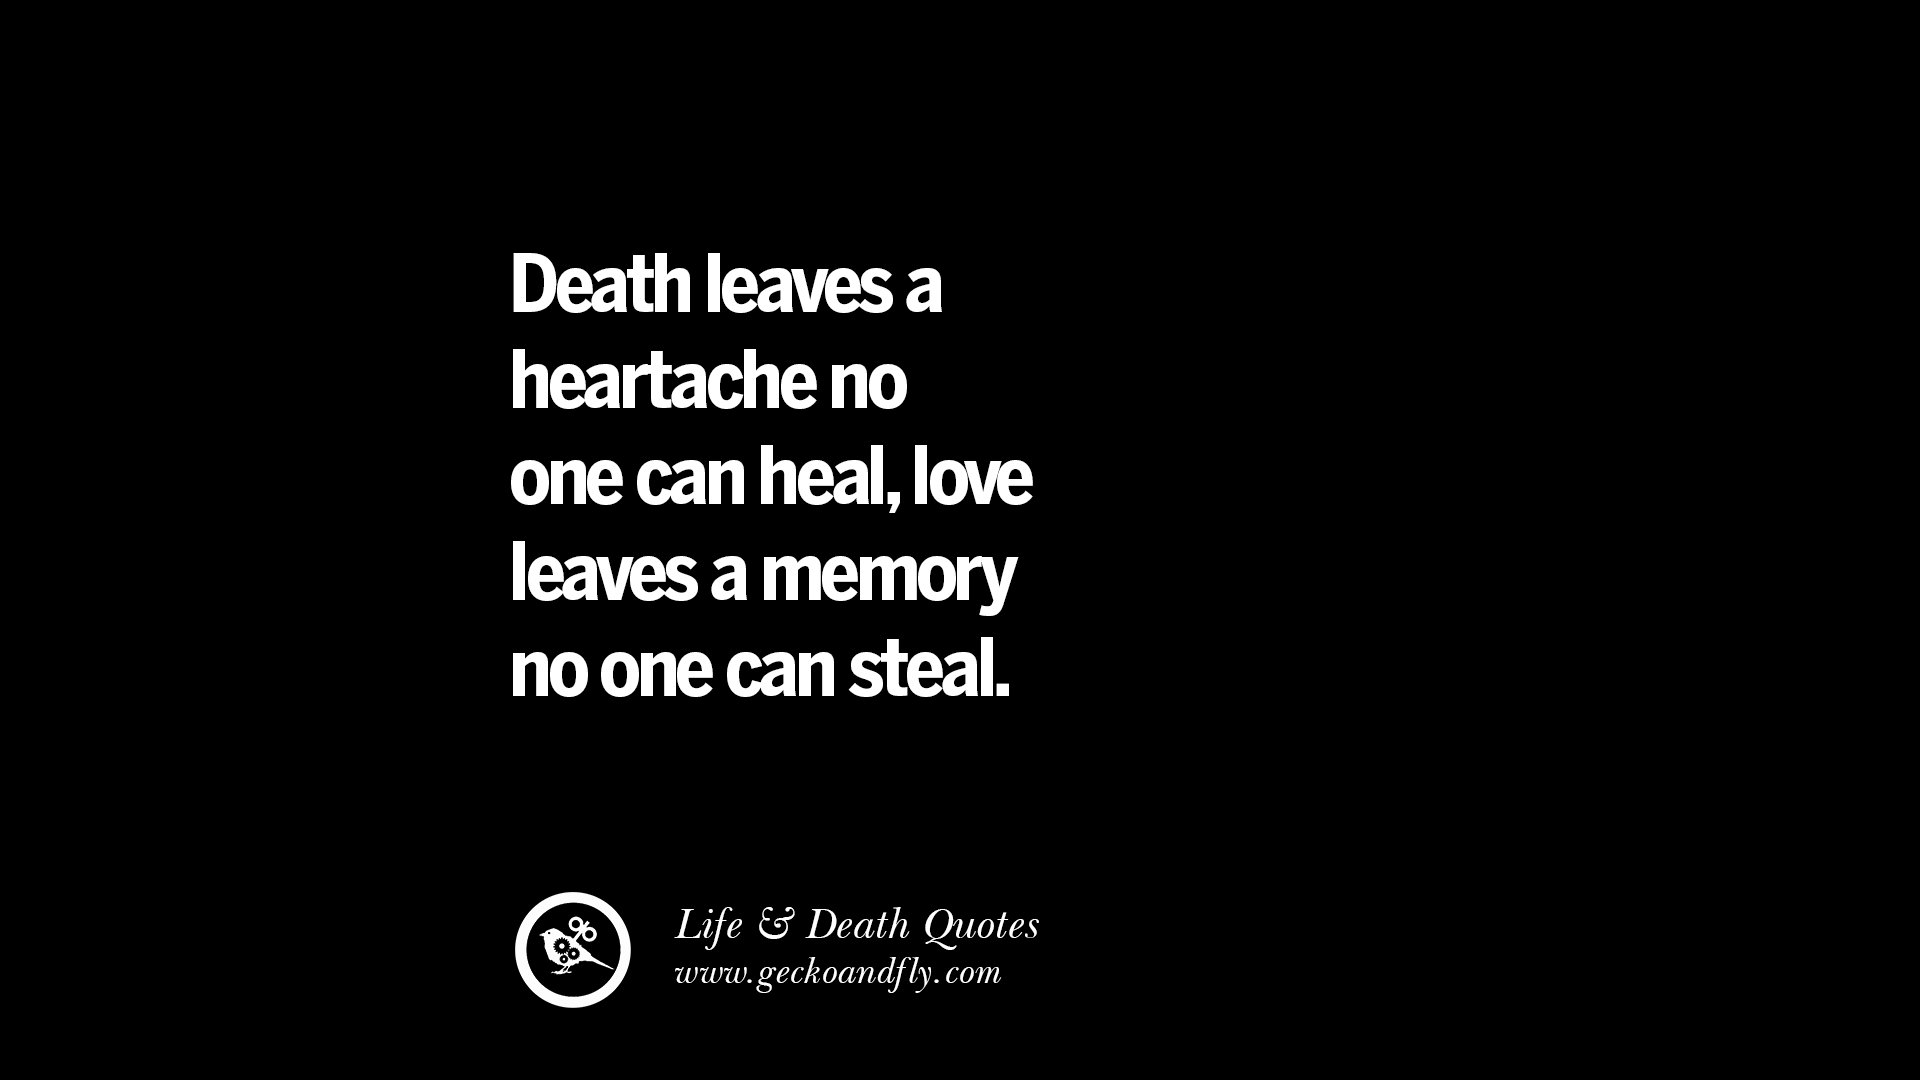 Inspirational Quotes About Death Of A Best Friend Image: 20 Inspirational Quotes On Life, Death And Losing Someone